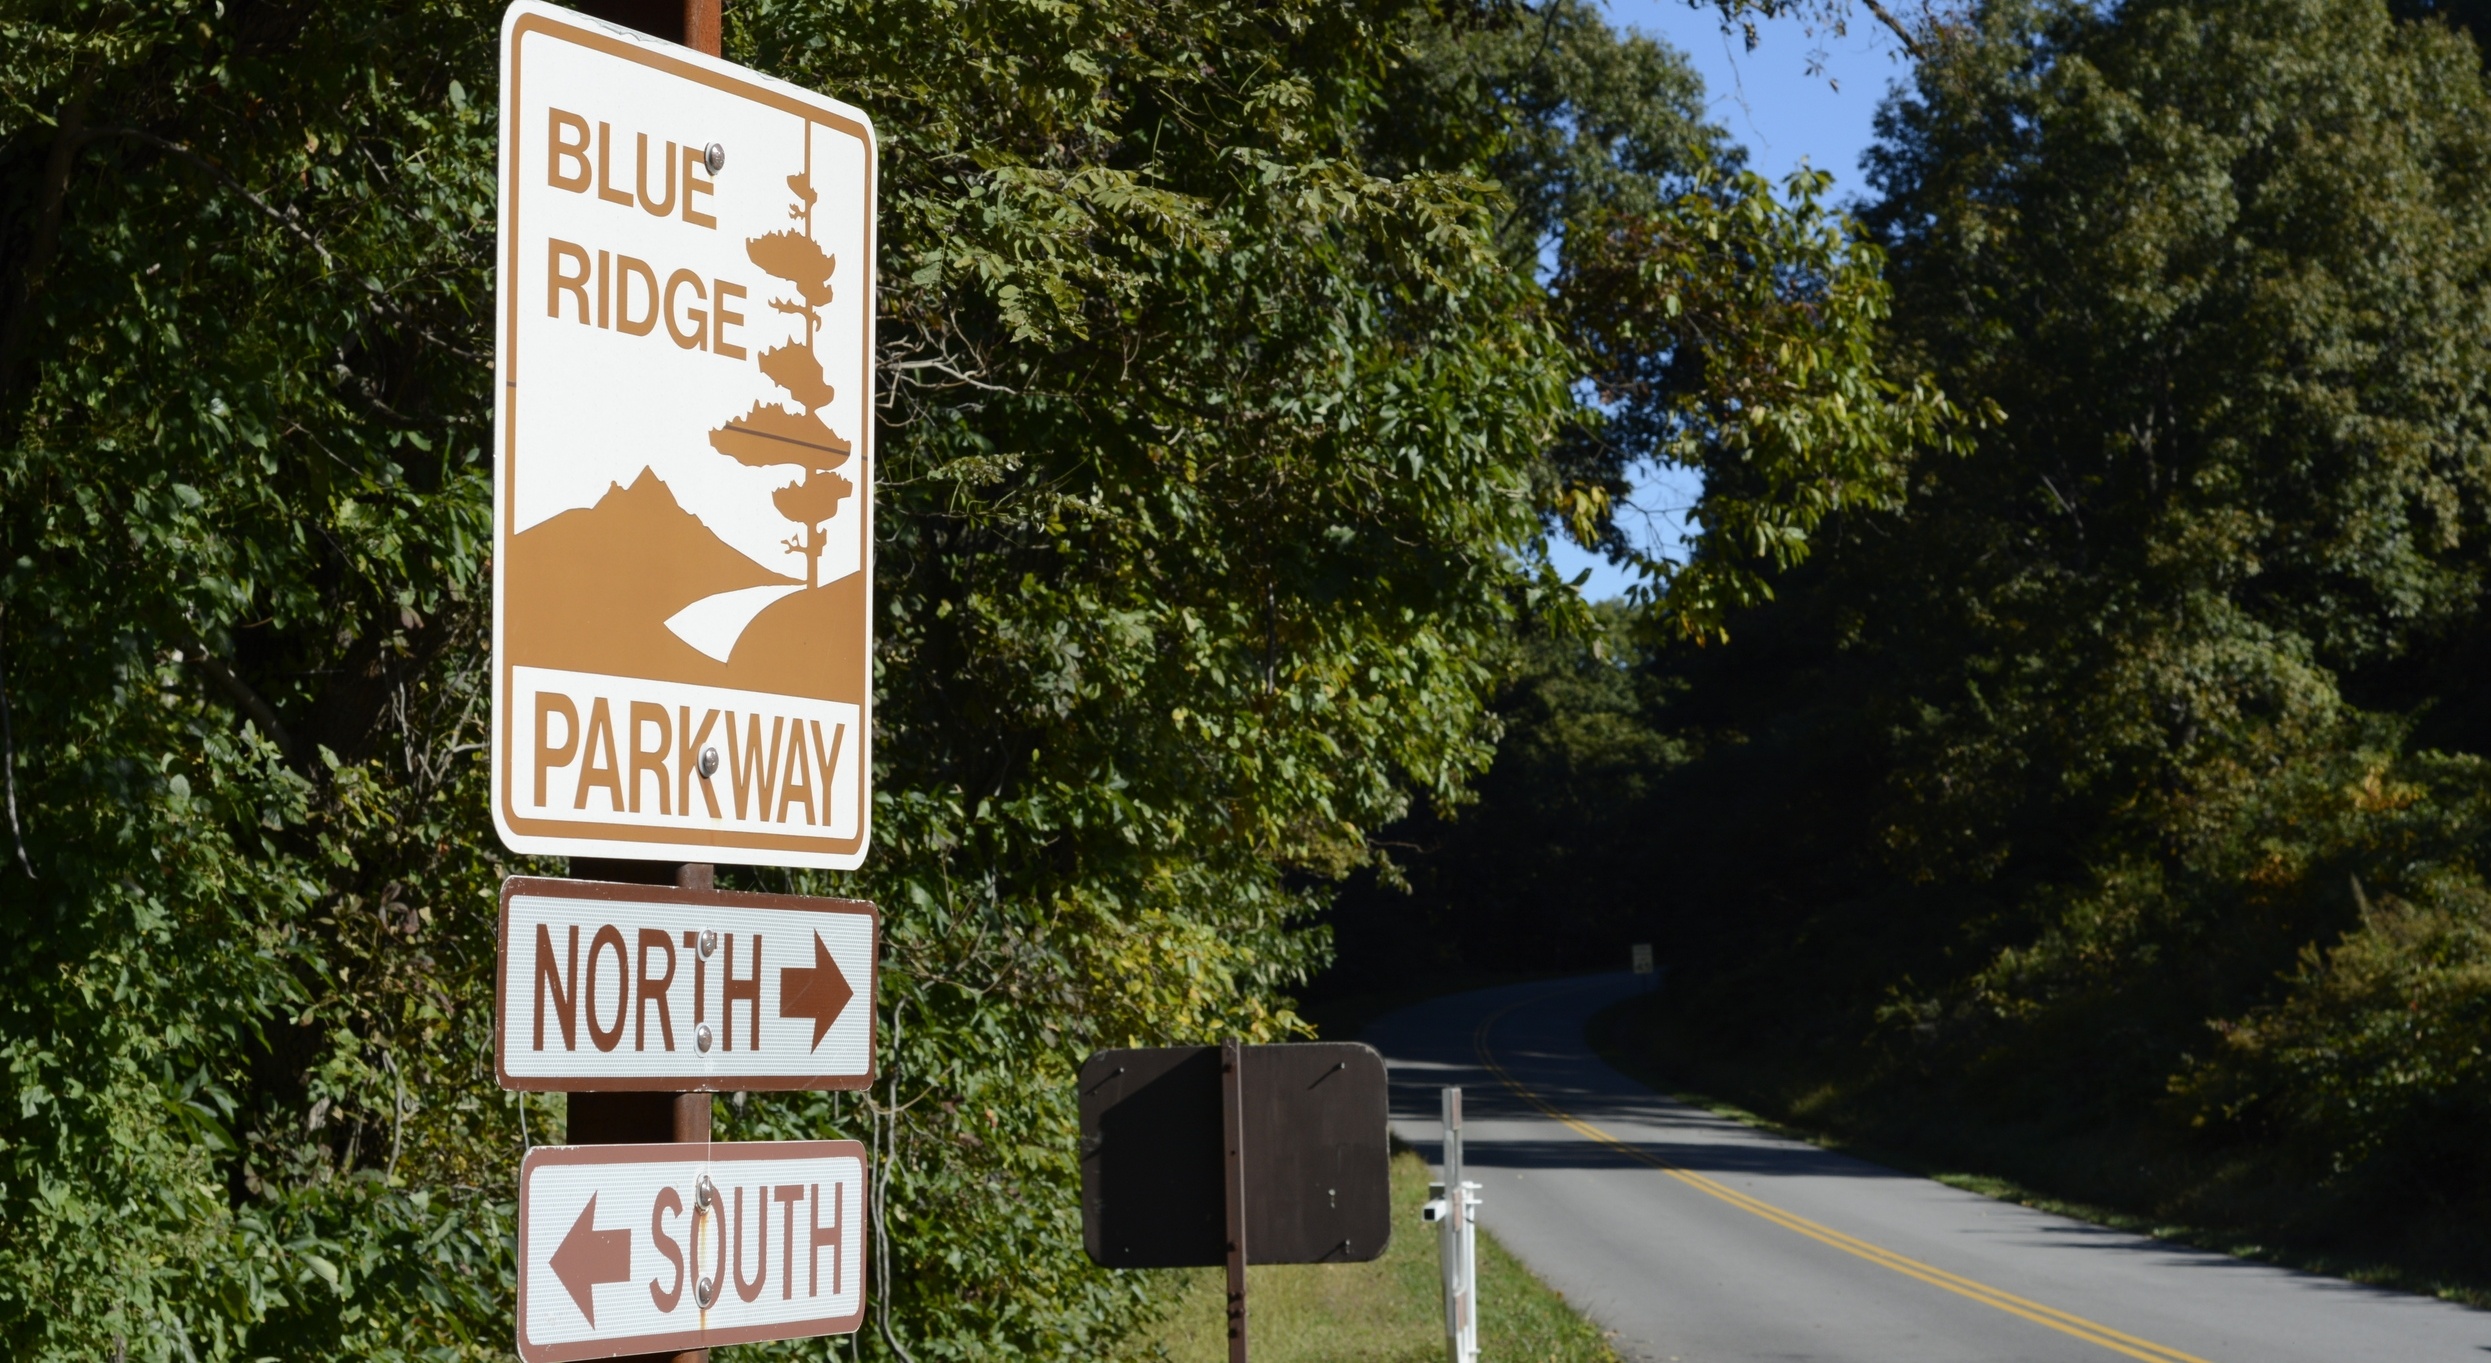 Go for a drive  along the world-famous  Blue Ridge Parkway , two minutes from the Wintergreen gatehouse.  Off of the parkway   in the surrounding countryside  are apple sheds to visit in the fall; wildflowers and birds to appreciate in the spring and summer; and, amazing snowy vistas to savor in the winter. Picnic fans also enjoy nearby  Sherando Lake Park .